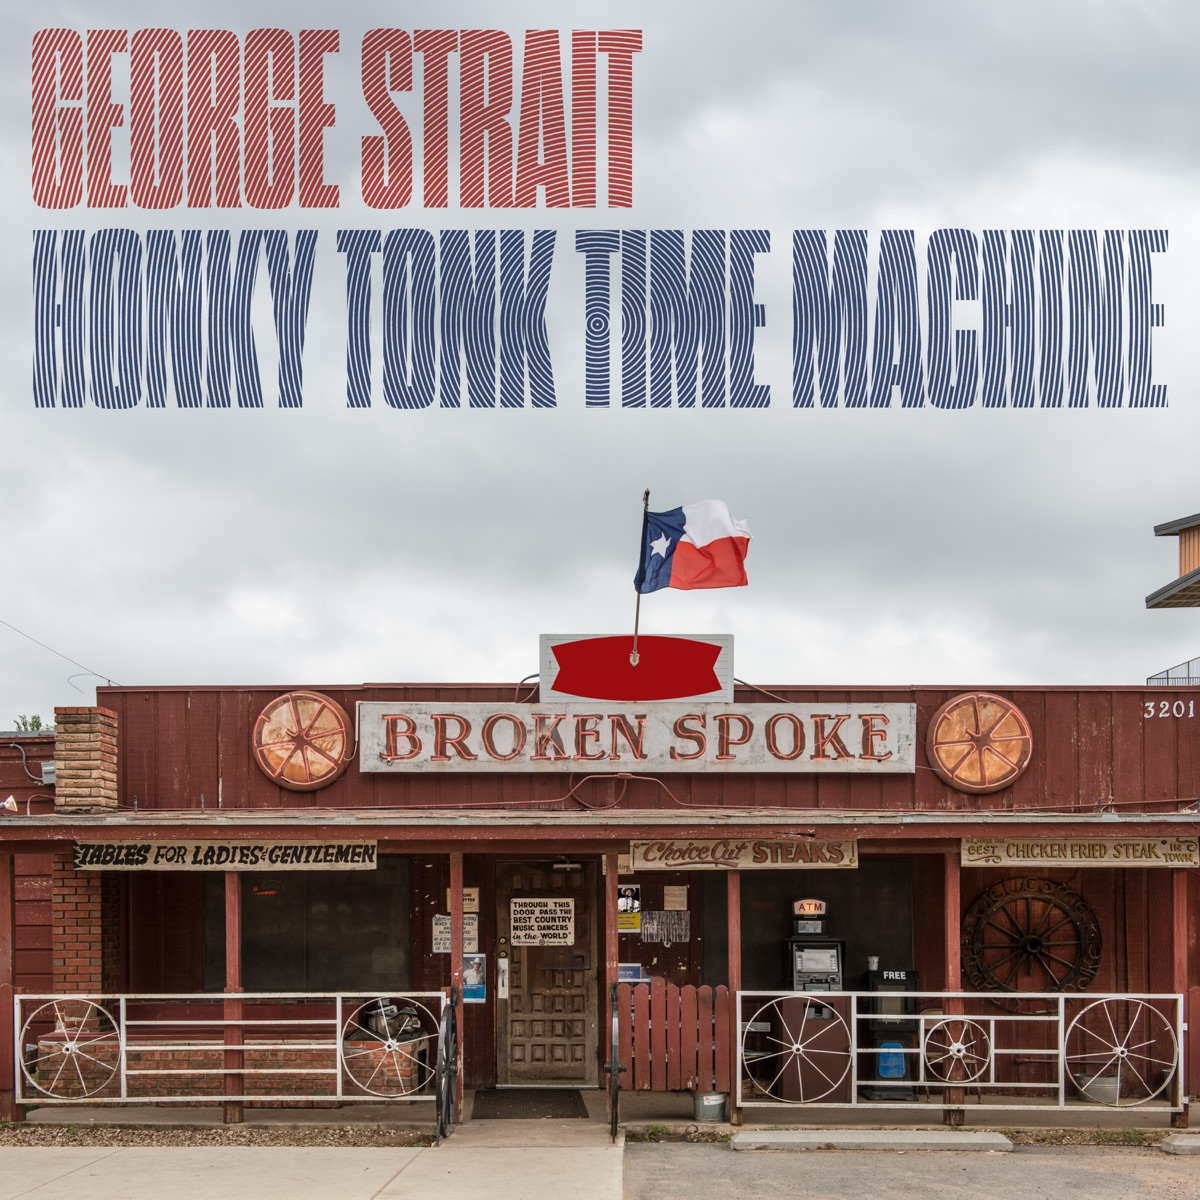 Honky Tonk Time Machine George Strait CD cover